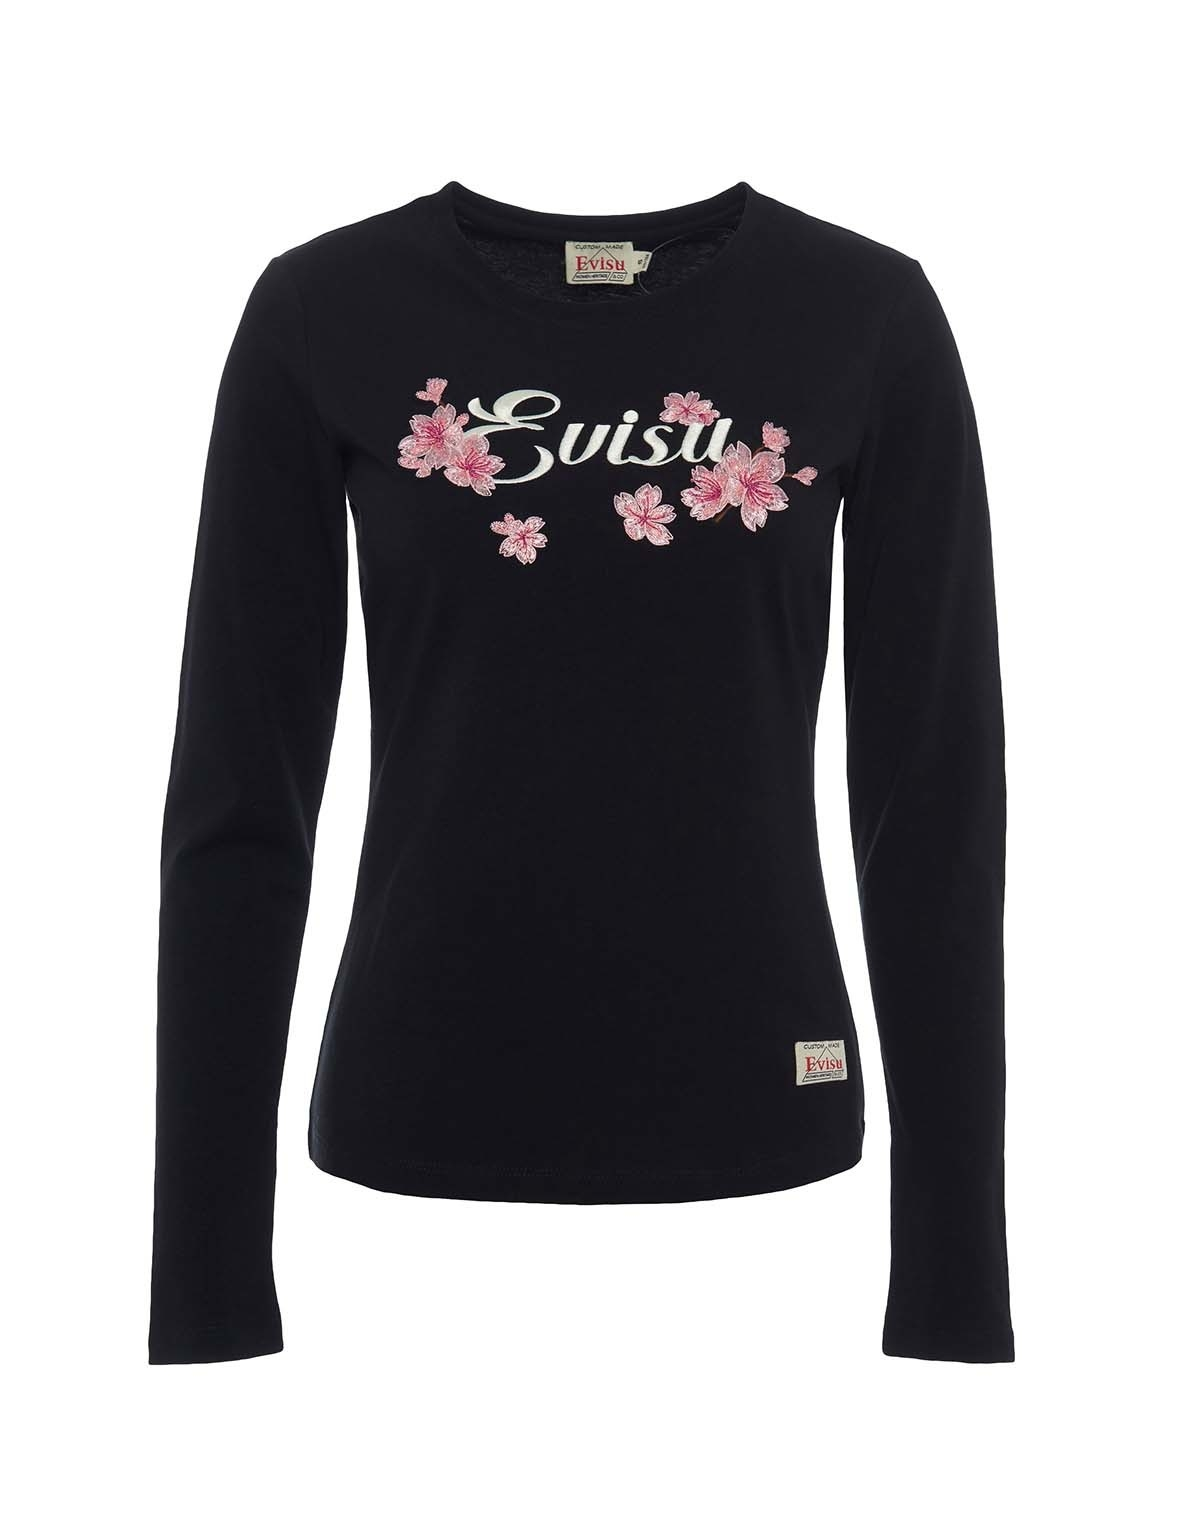 EVISU Sakura Embroidered Long-Sleeved T-Shirt